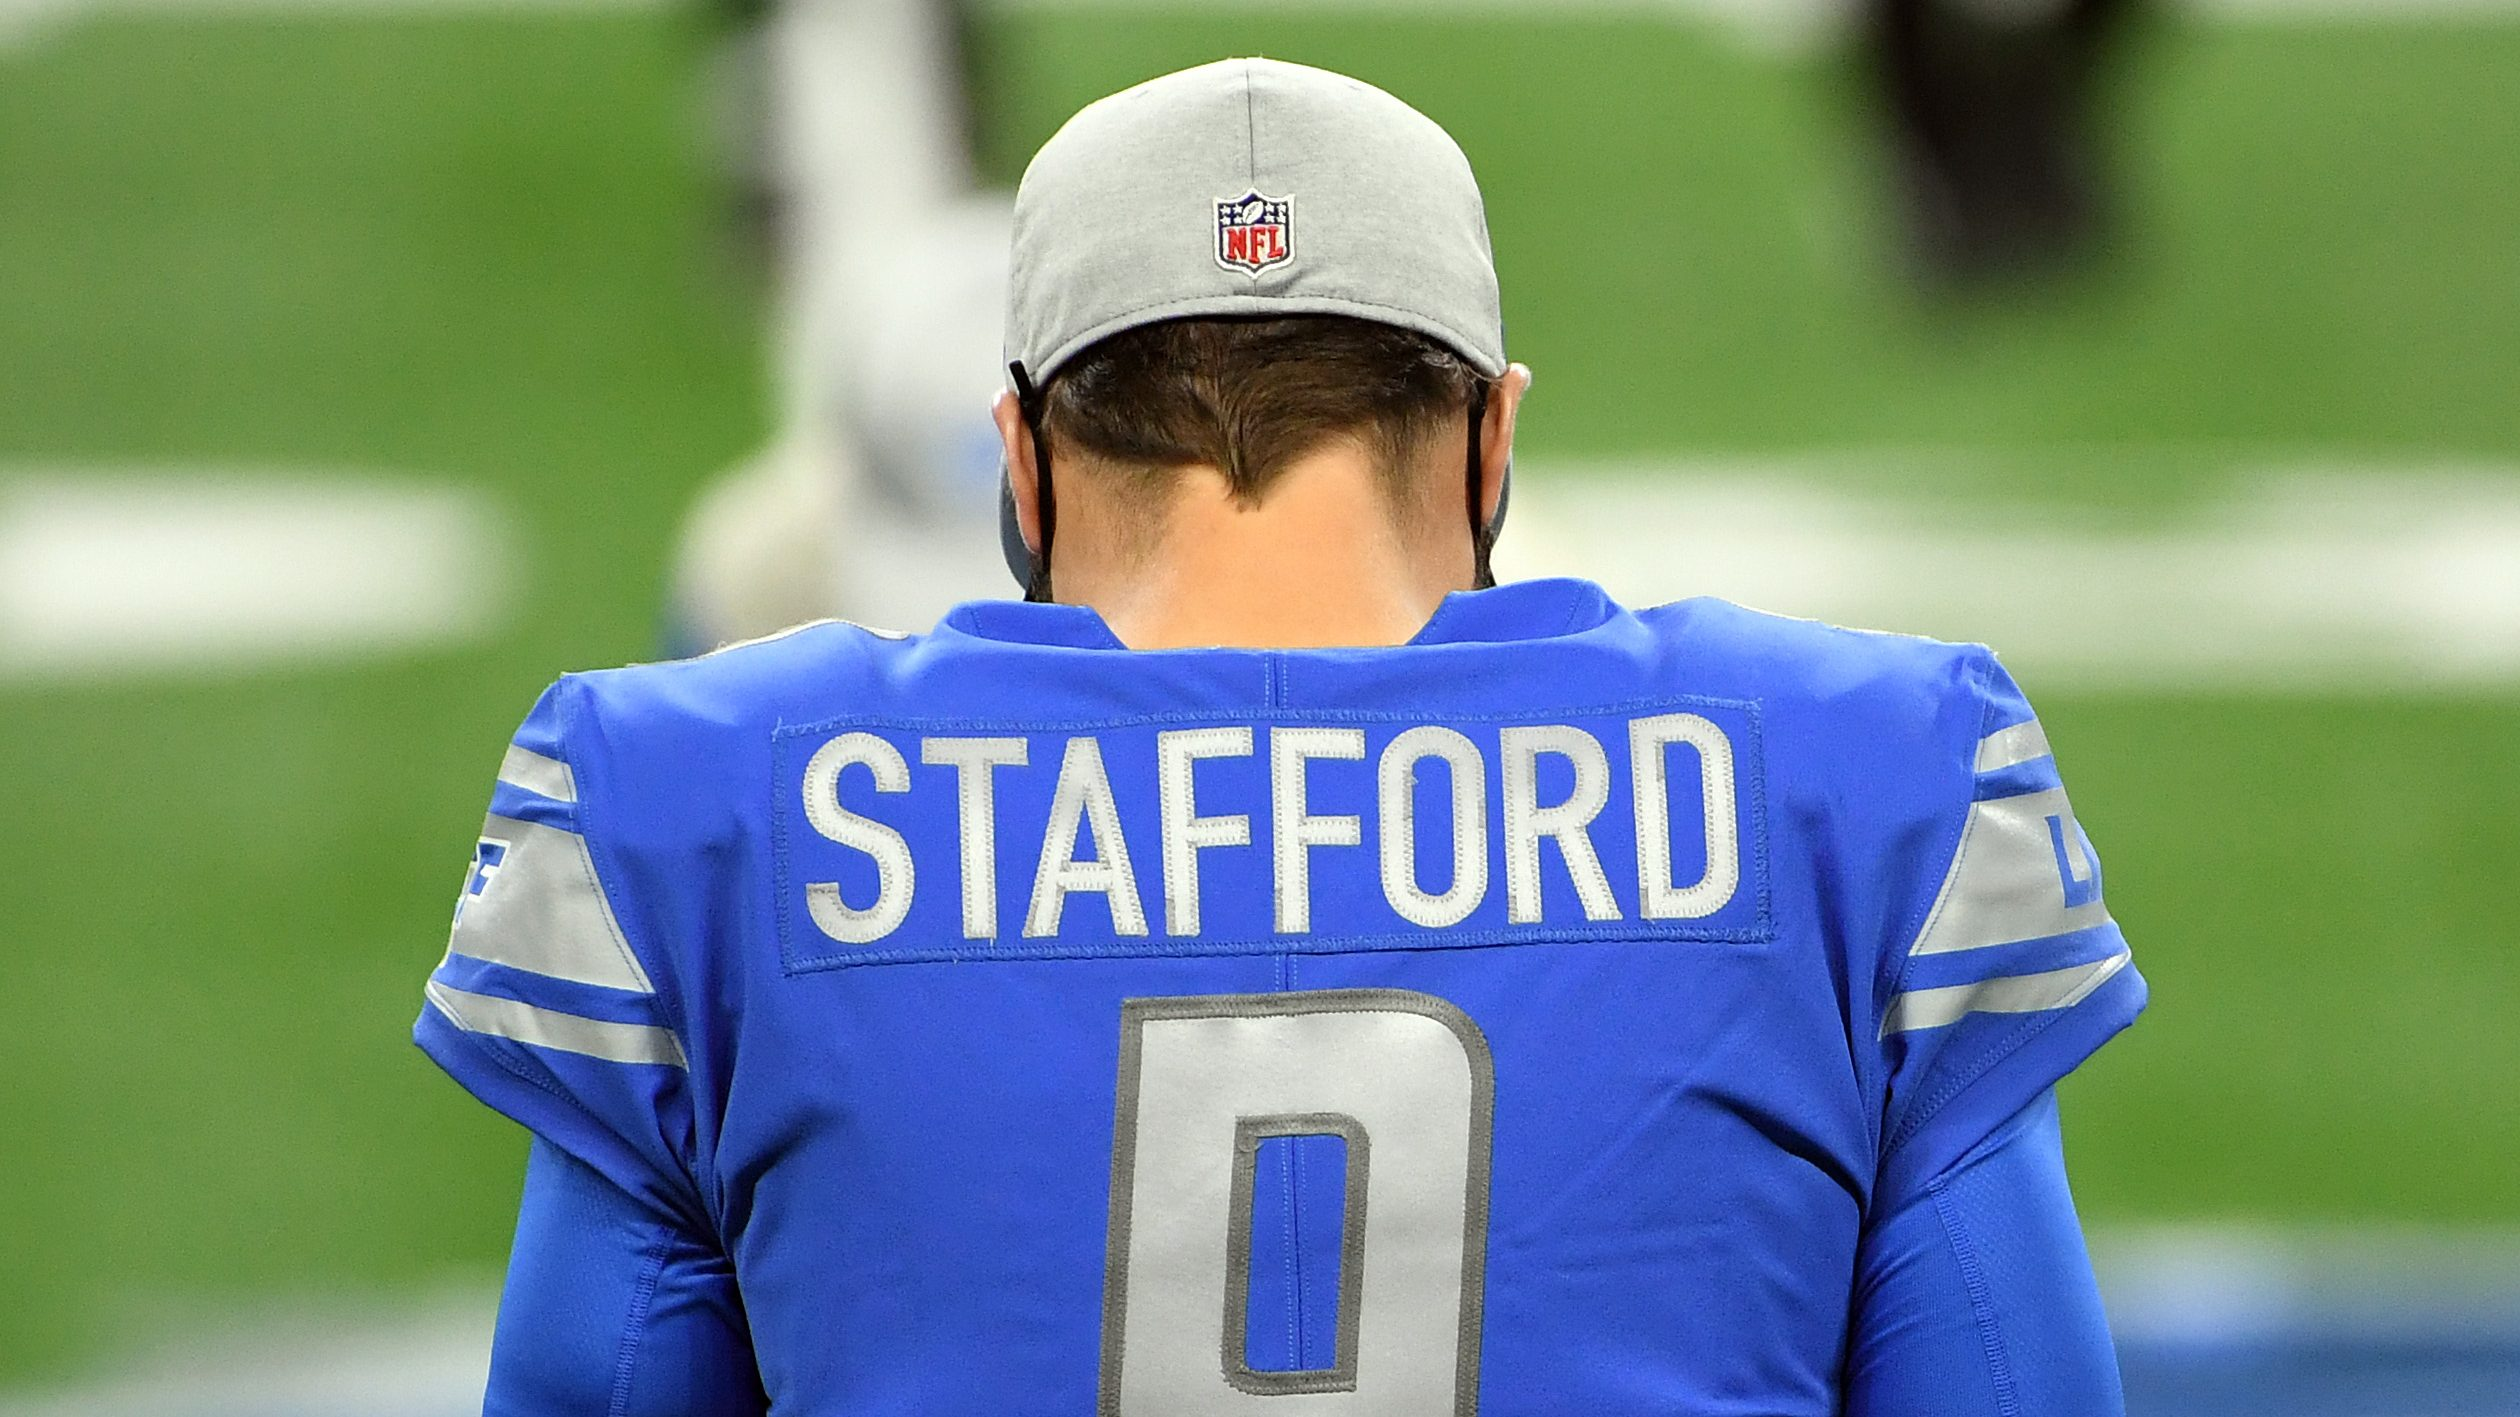 Matthew Stafford, quarterback of the Detroit Lions, stands on the field before the game against the Green Bay Packers at Ford Field on December 13, 2020 in Detroit, Michigan. Stafford has his back to the camera, all that's visible is his hat and his jersey.